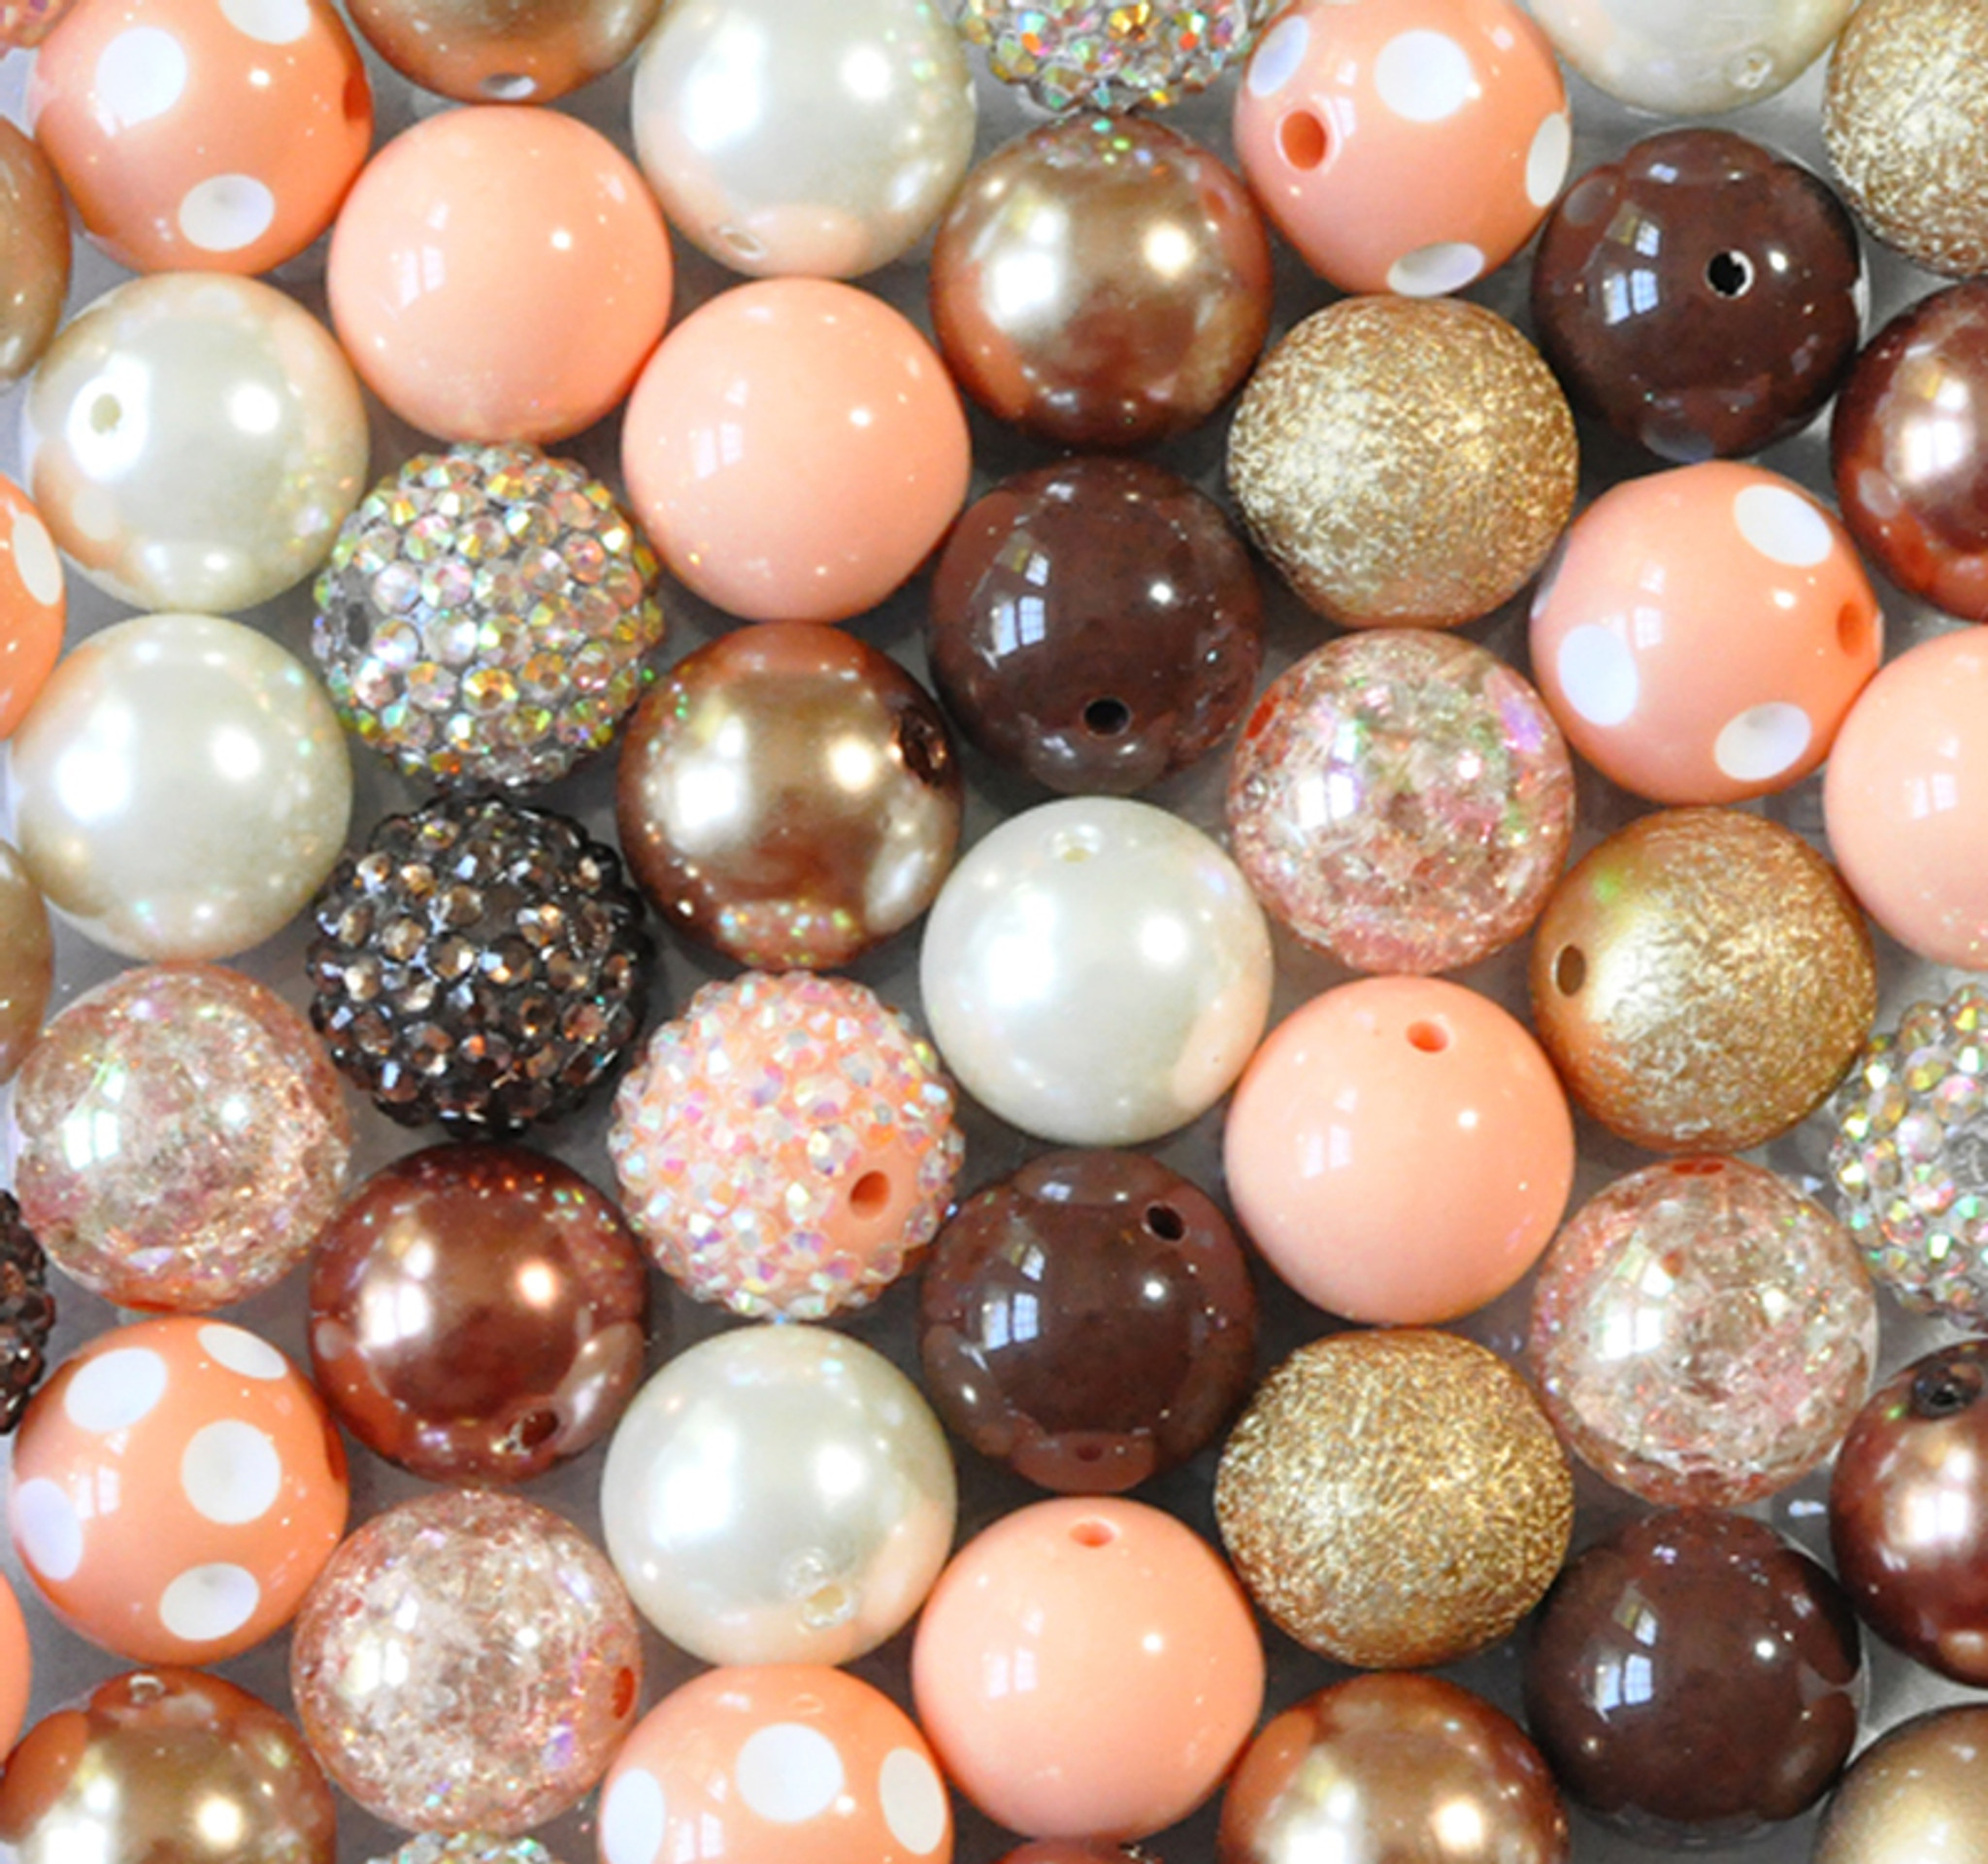 Peach, brown, and gold bubblegum bead wholesale kit